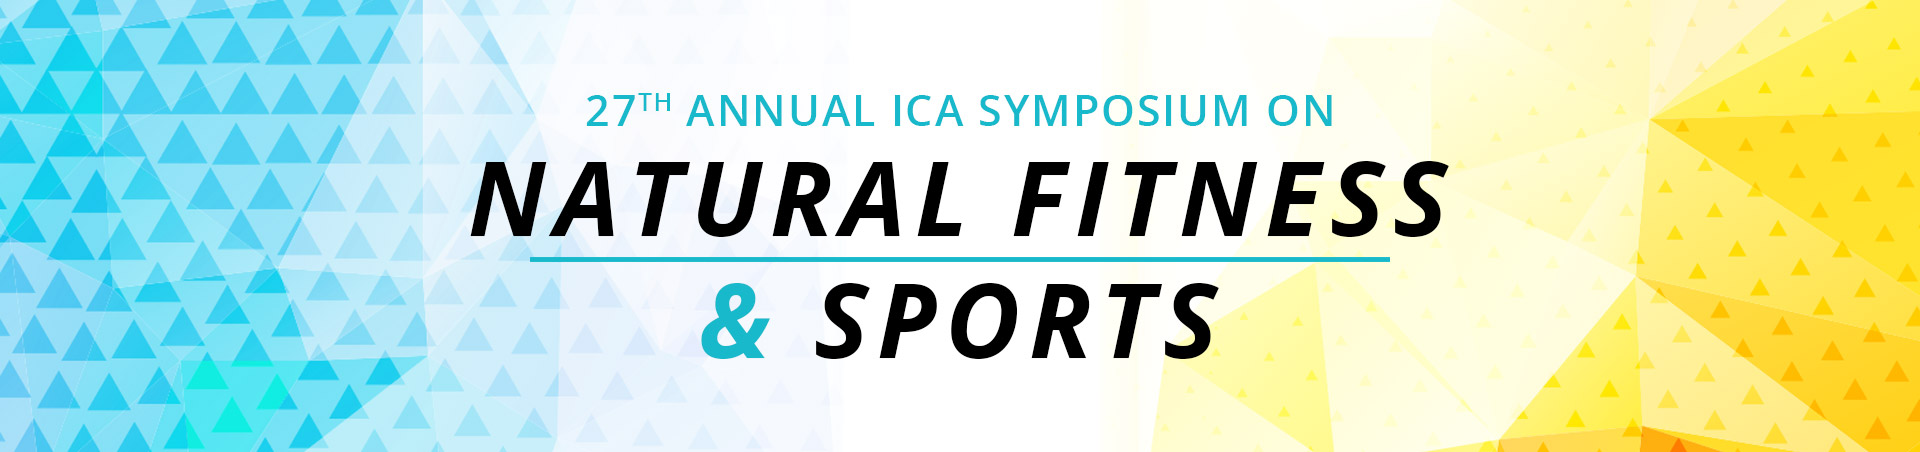 27th Annual ICA Symposium on Natural Fitness & Sports